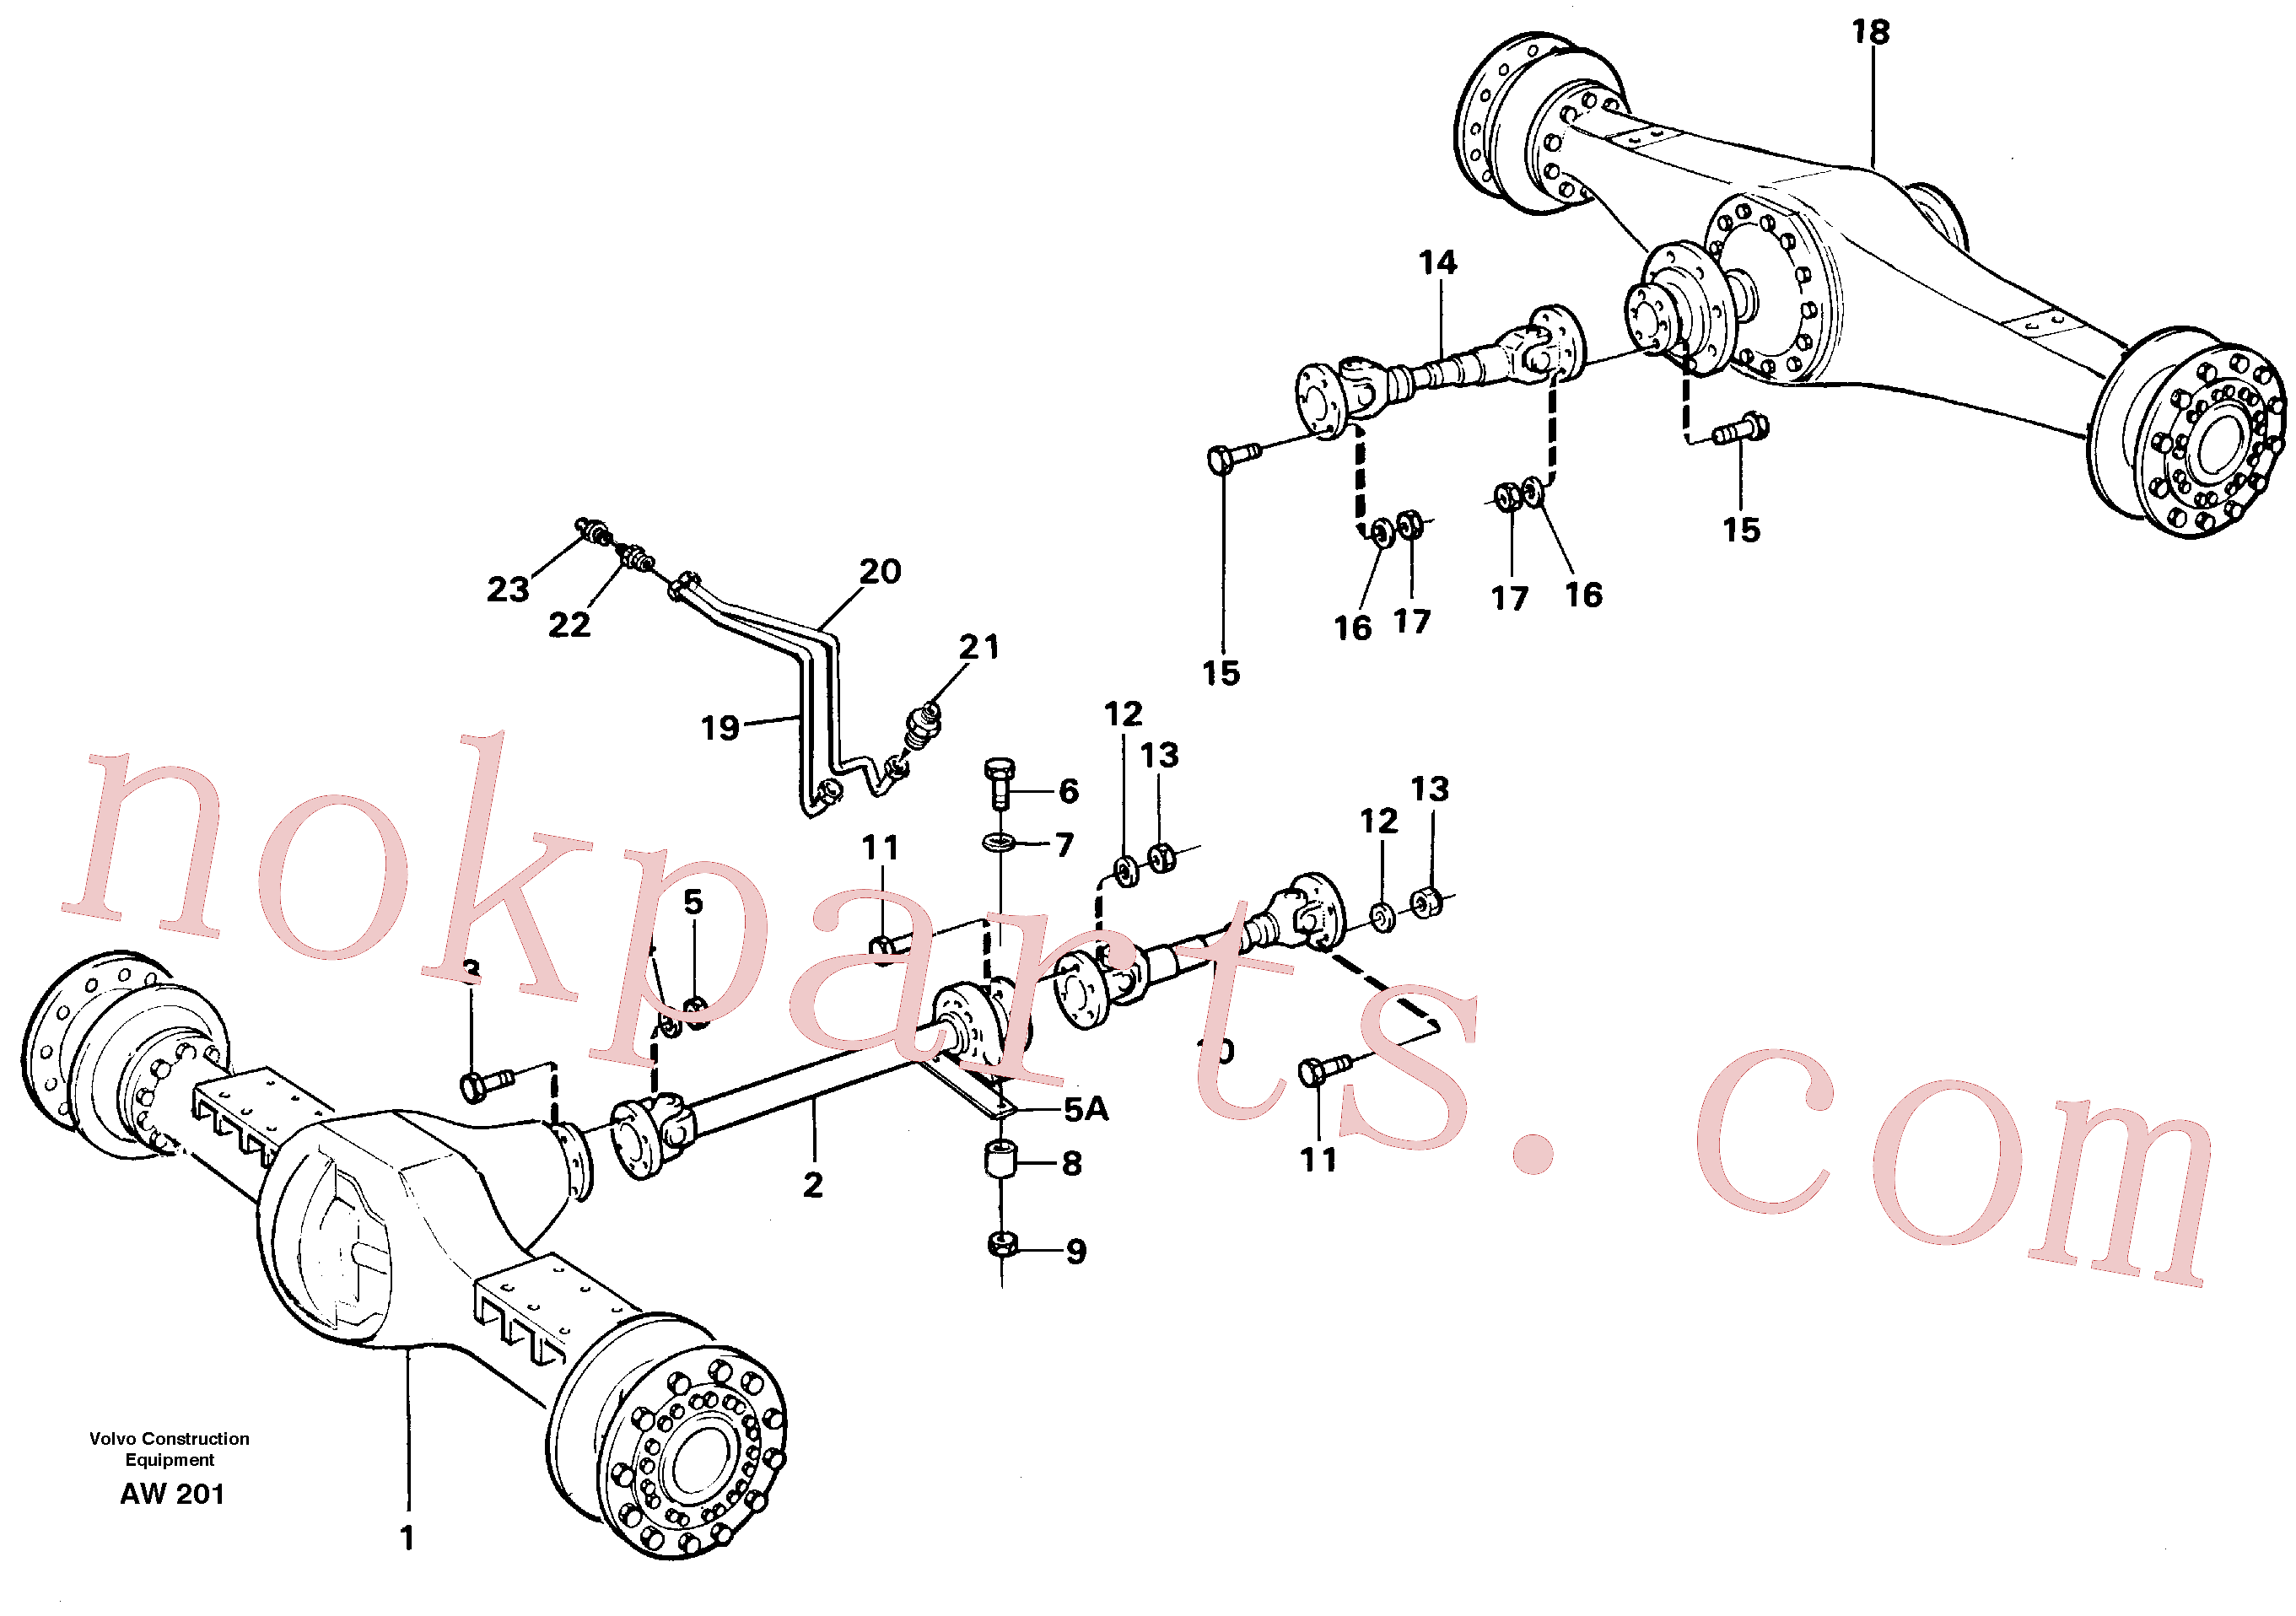 VOE11172120 for Volvo Propeller shafts with fitting parts(AW201 assembly)